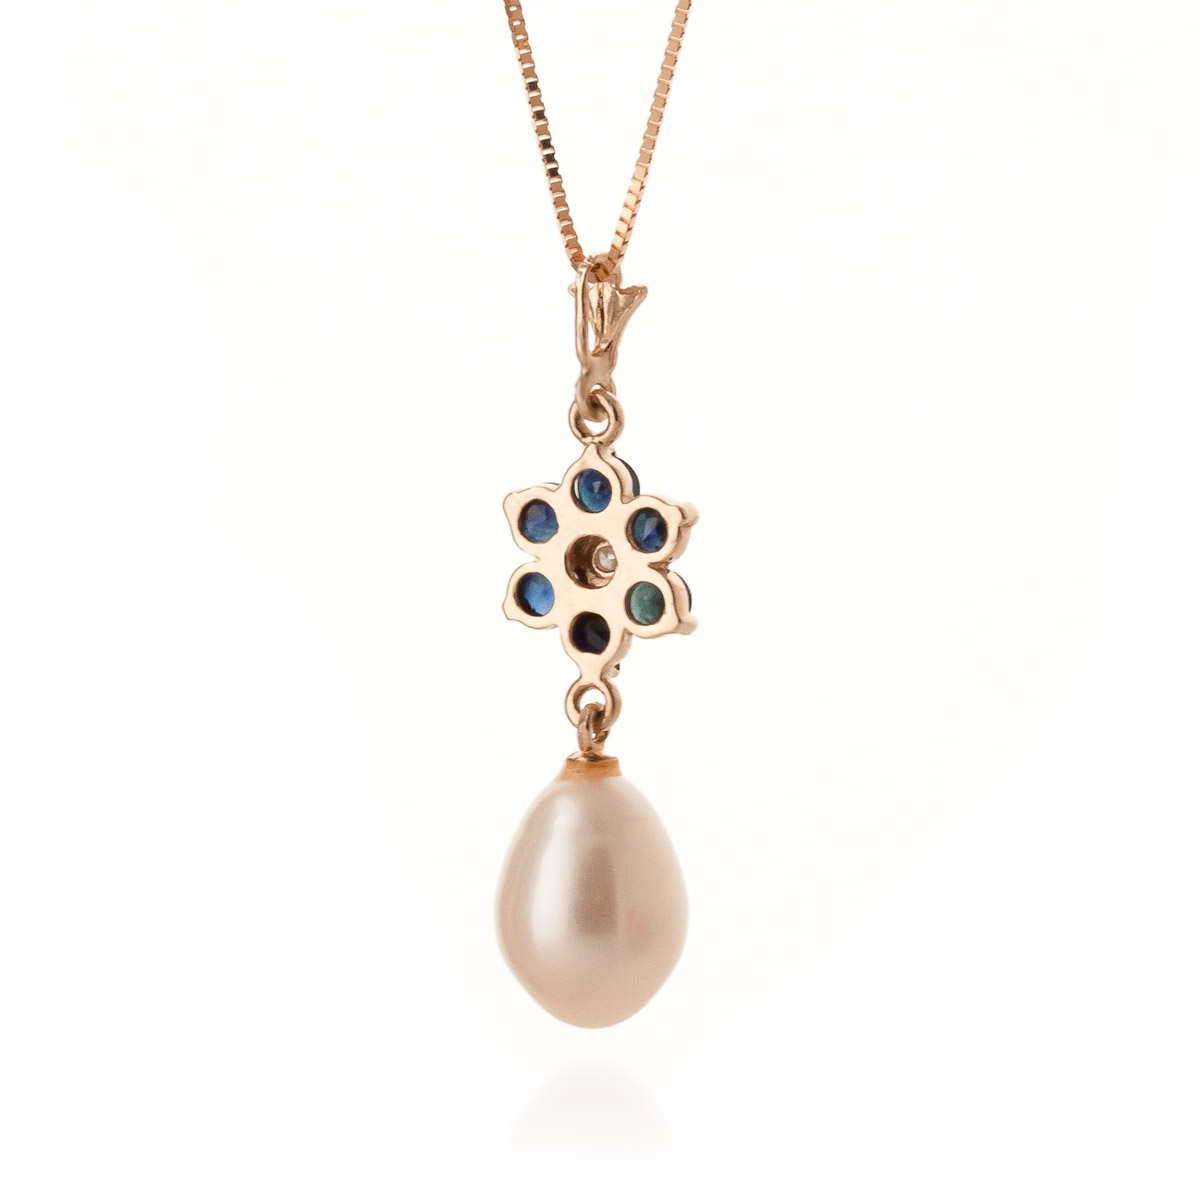 Sapphire and Diamond Flower Pendant Necklace 3.8ctw in 9ct Rose Gold